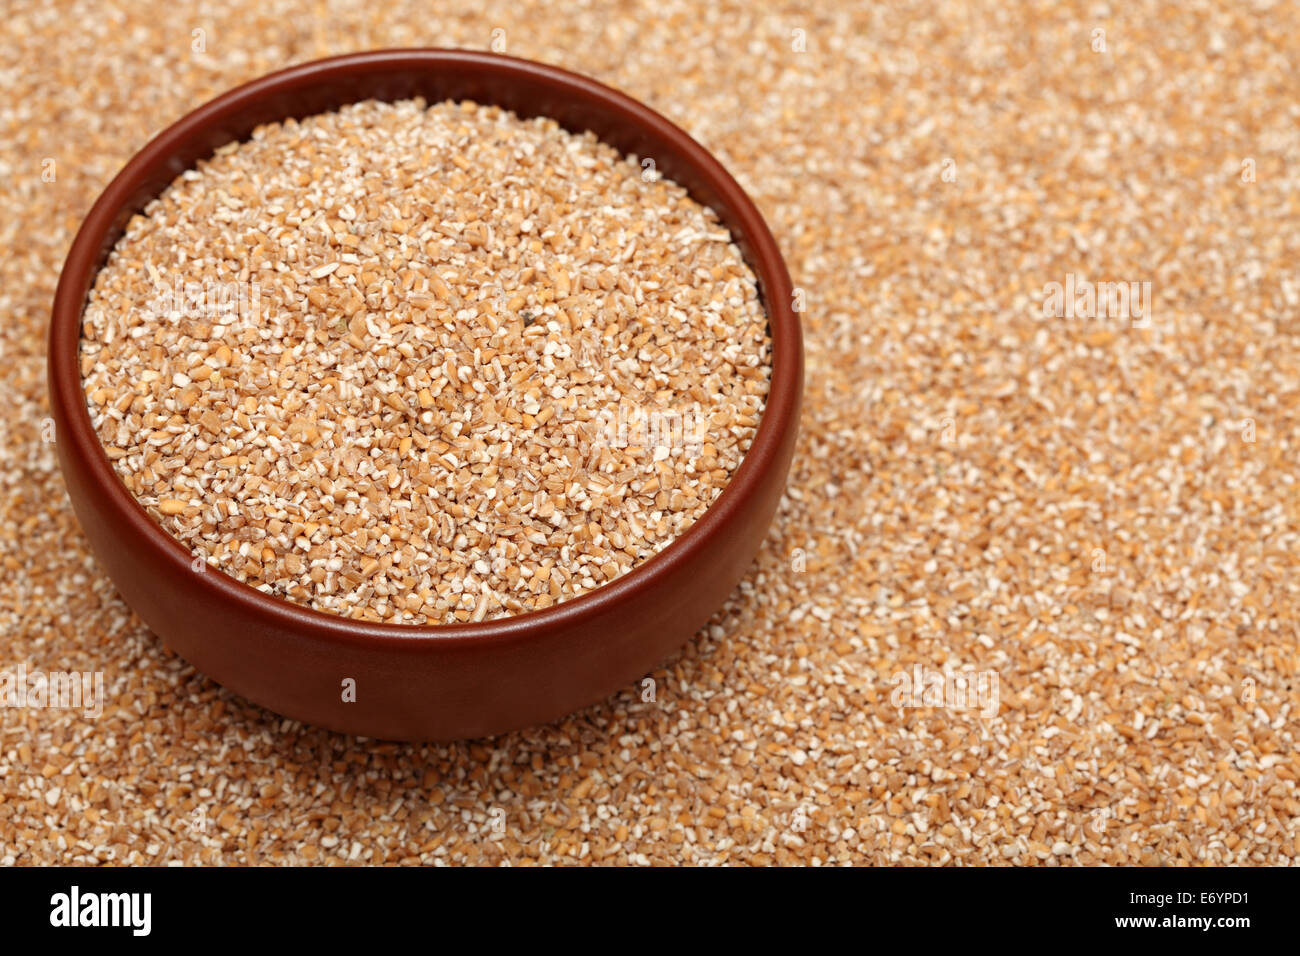 Wheat groats in bowl on wheat groats background. Closeup. - Stock Image